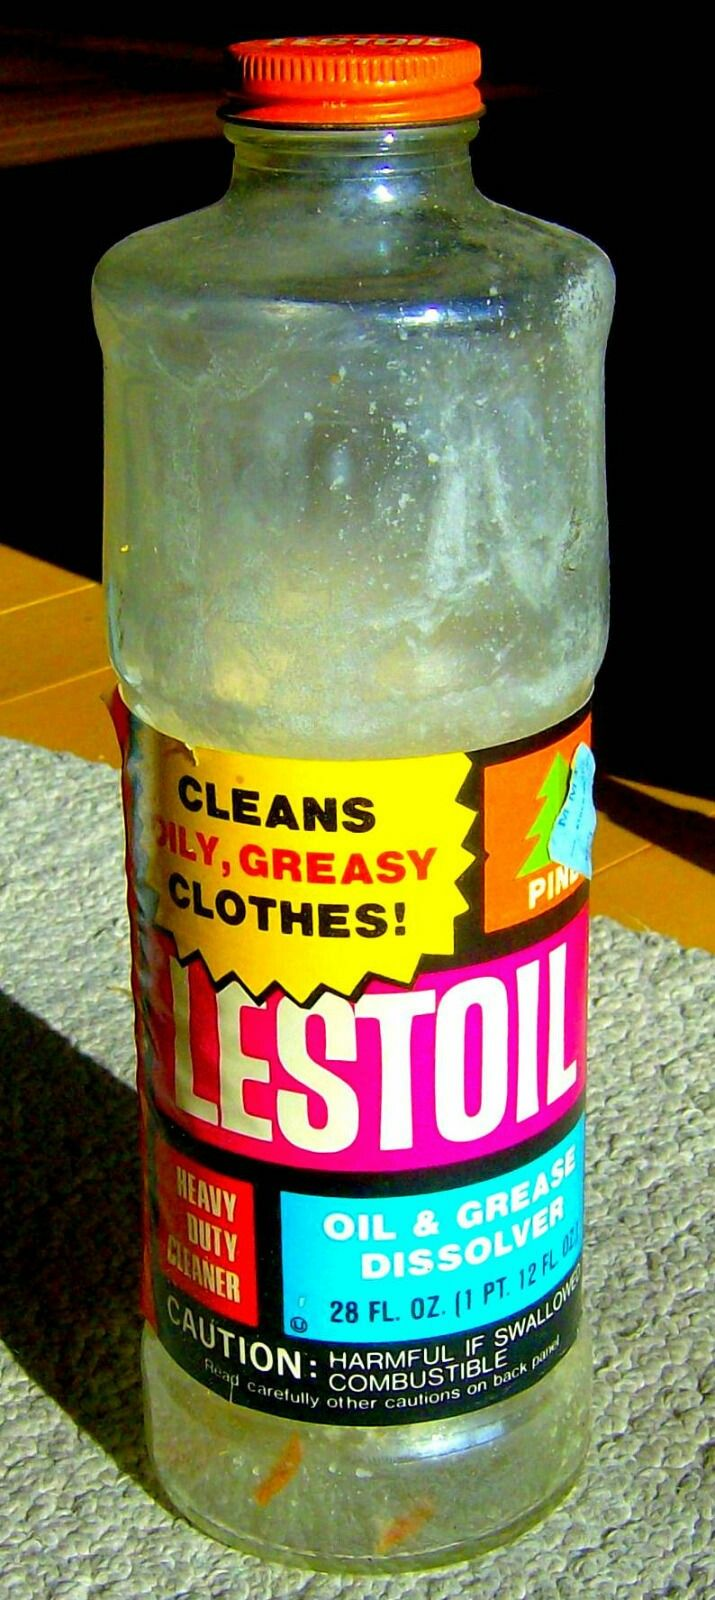 Lestoil Heavy Duty Cleaner 1973 Bottle Vintage Packaging Vintage Advertisements Vintage Laundry